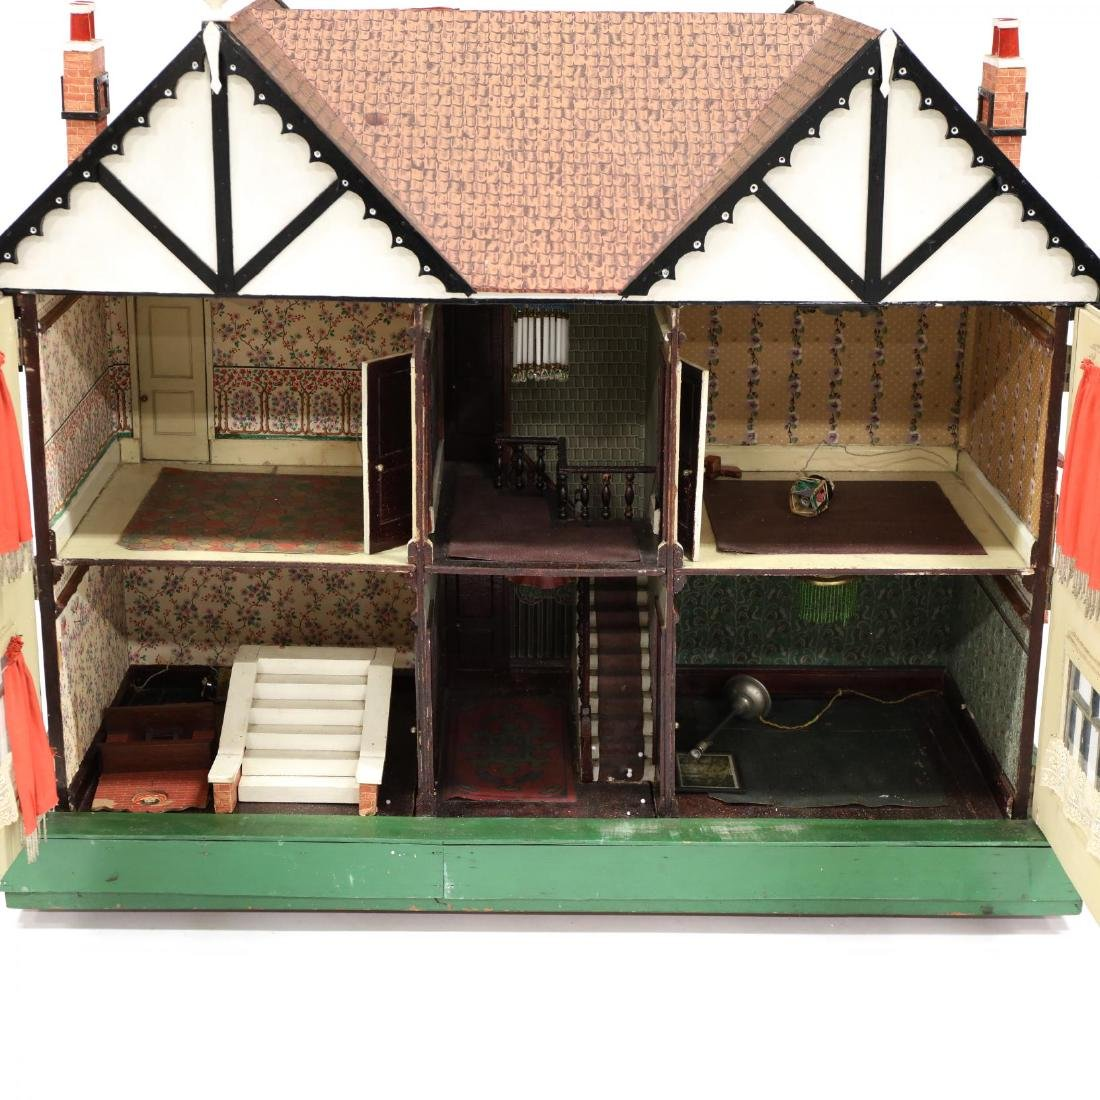 Edwardian Tudor-Style Doll House - 4